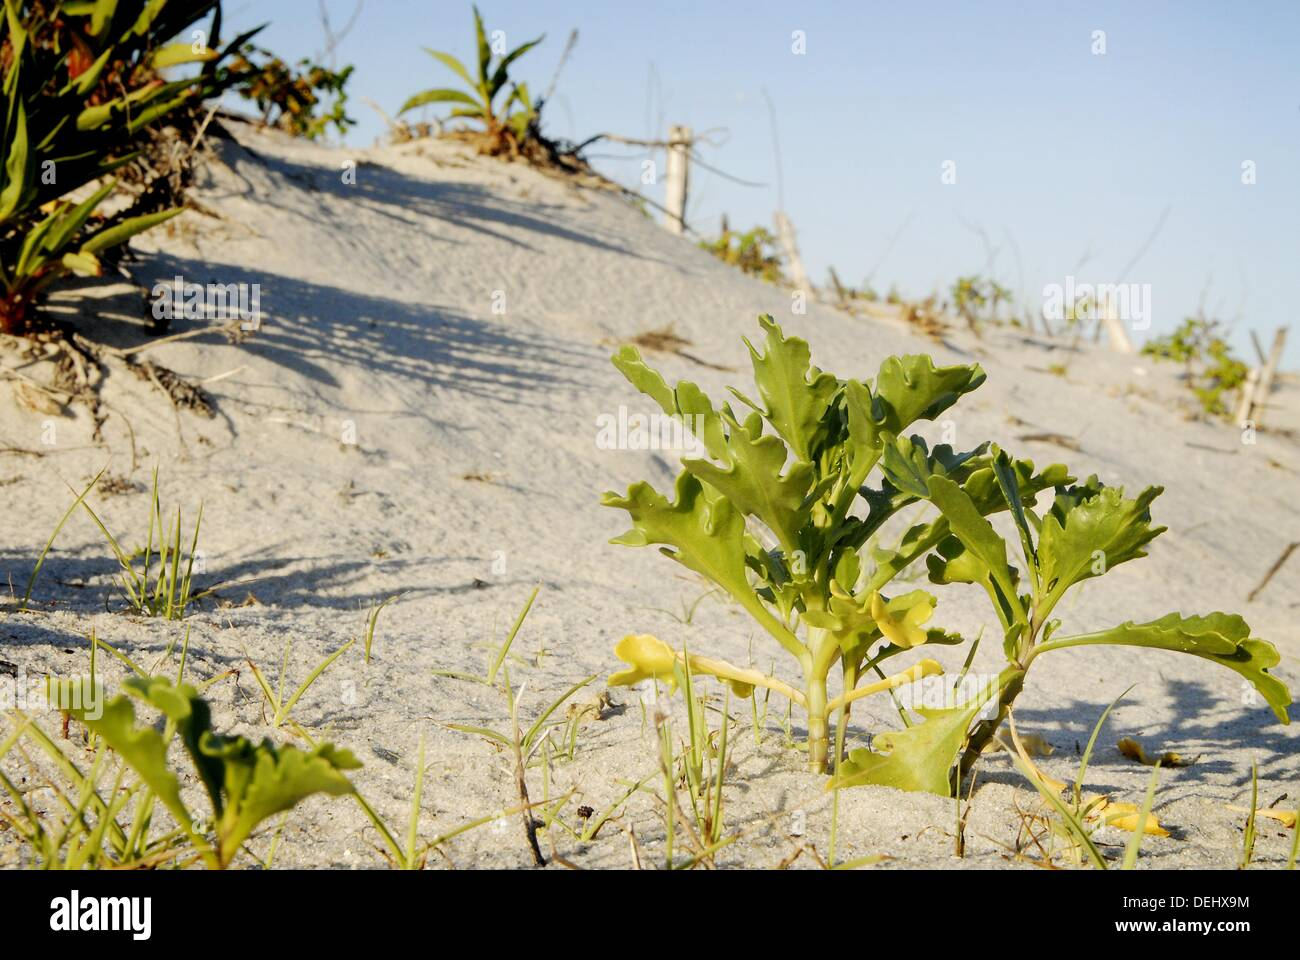 A plant stakes out its spot on dunes, Long Beach Island, New Jersey, USA. - Stock Image